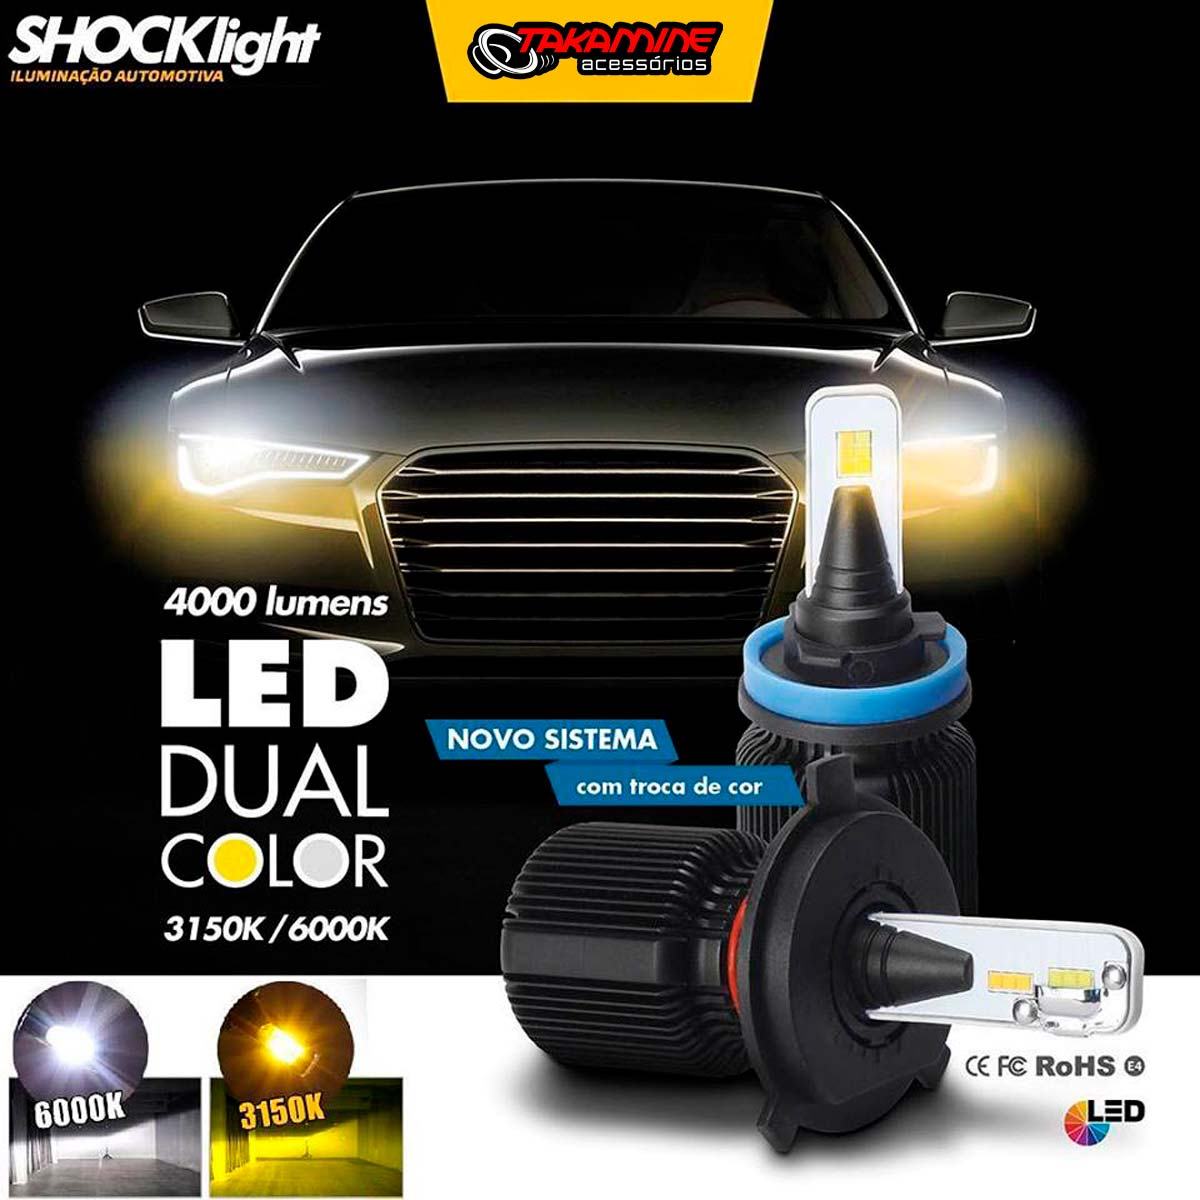 Kit de lâmpadas LED Dual Color Headlight Shocklight  tipo xenon HB3 25W ilumina branco e amarelo